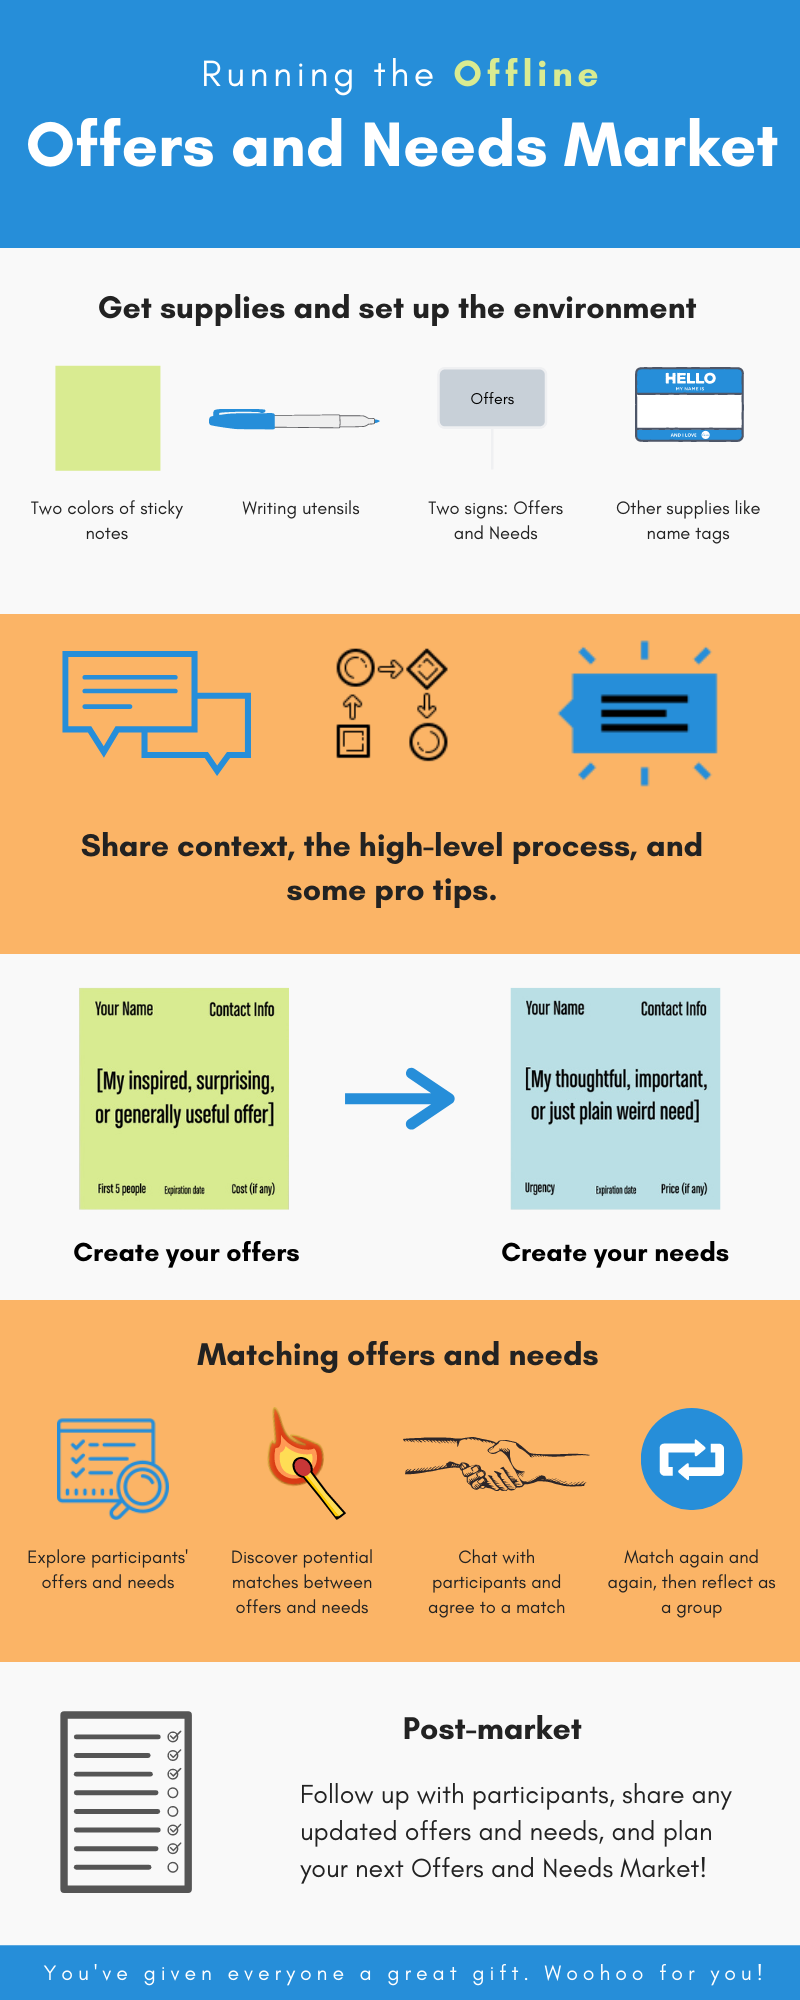 Offers and Needs Market Process Infographic